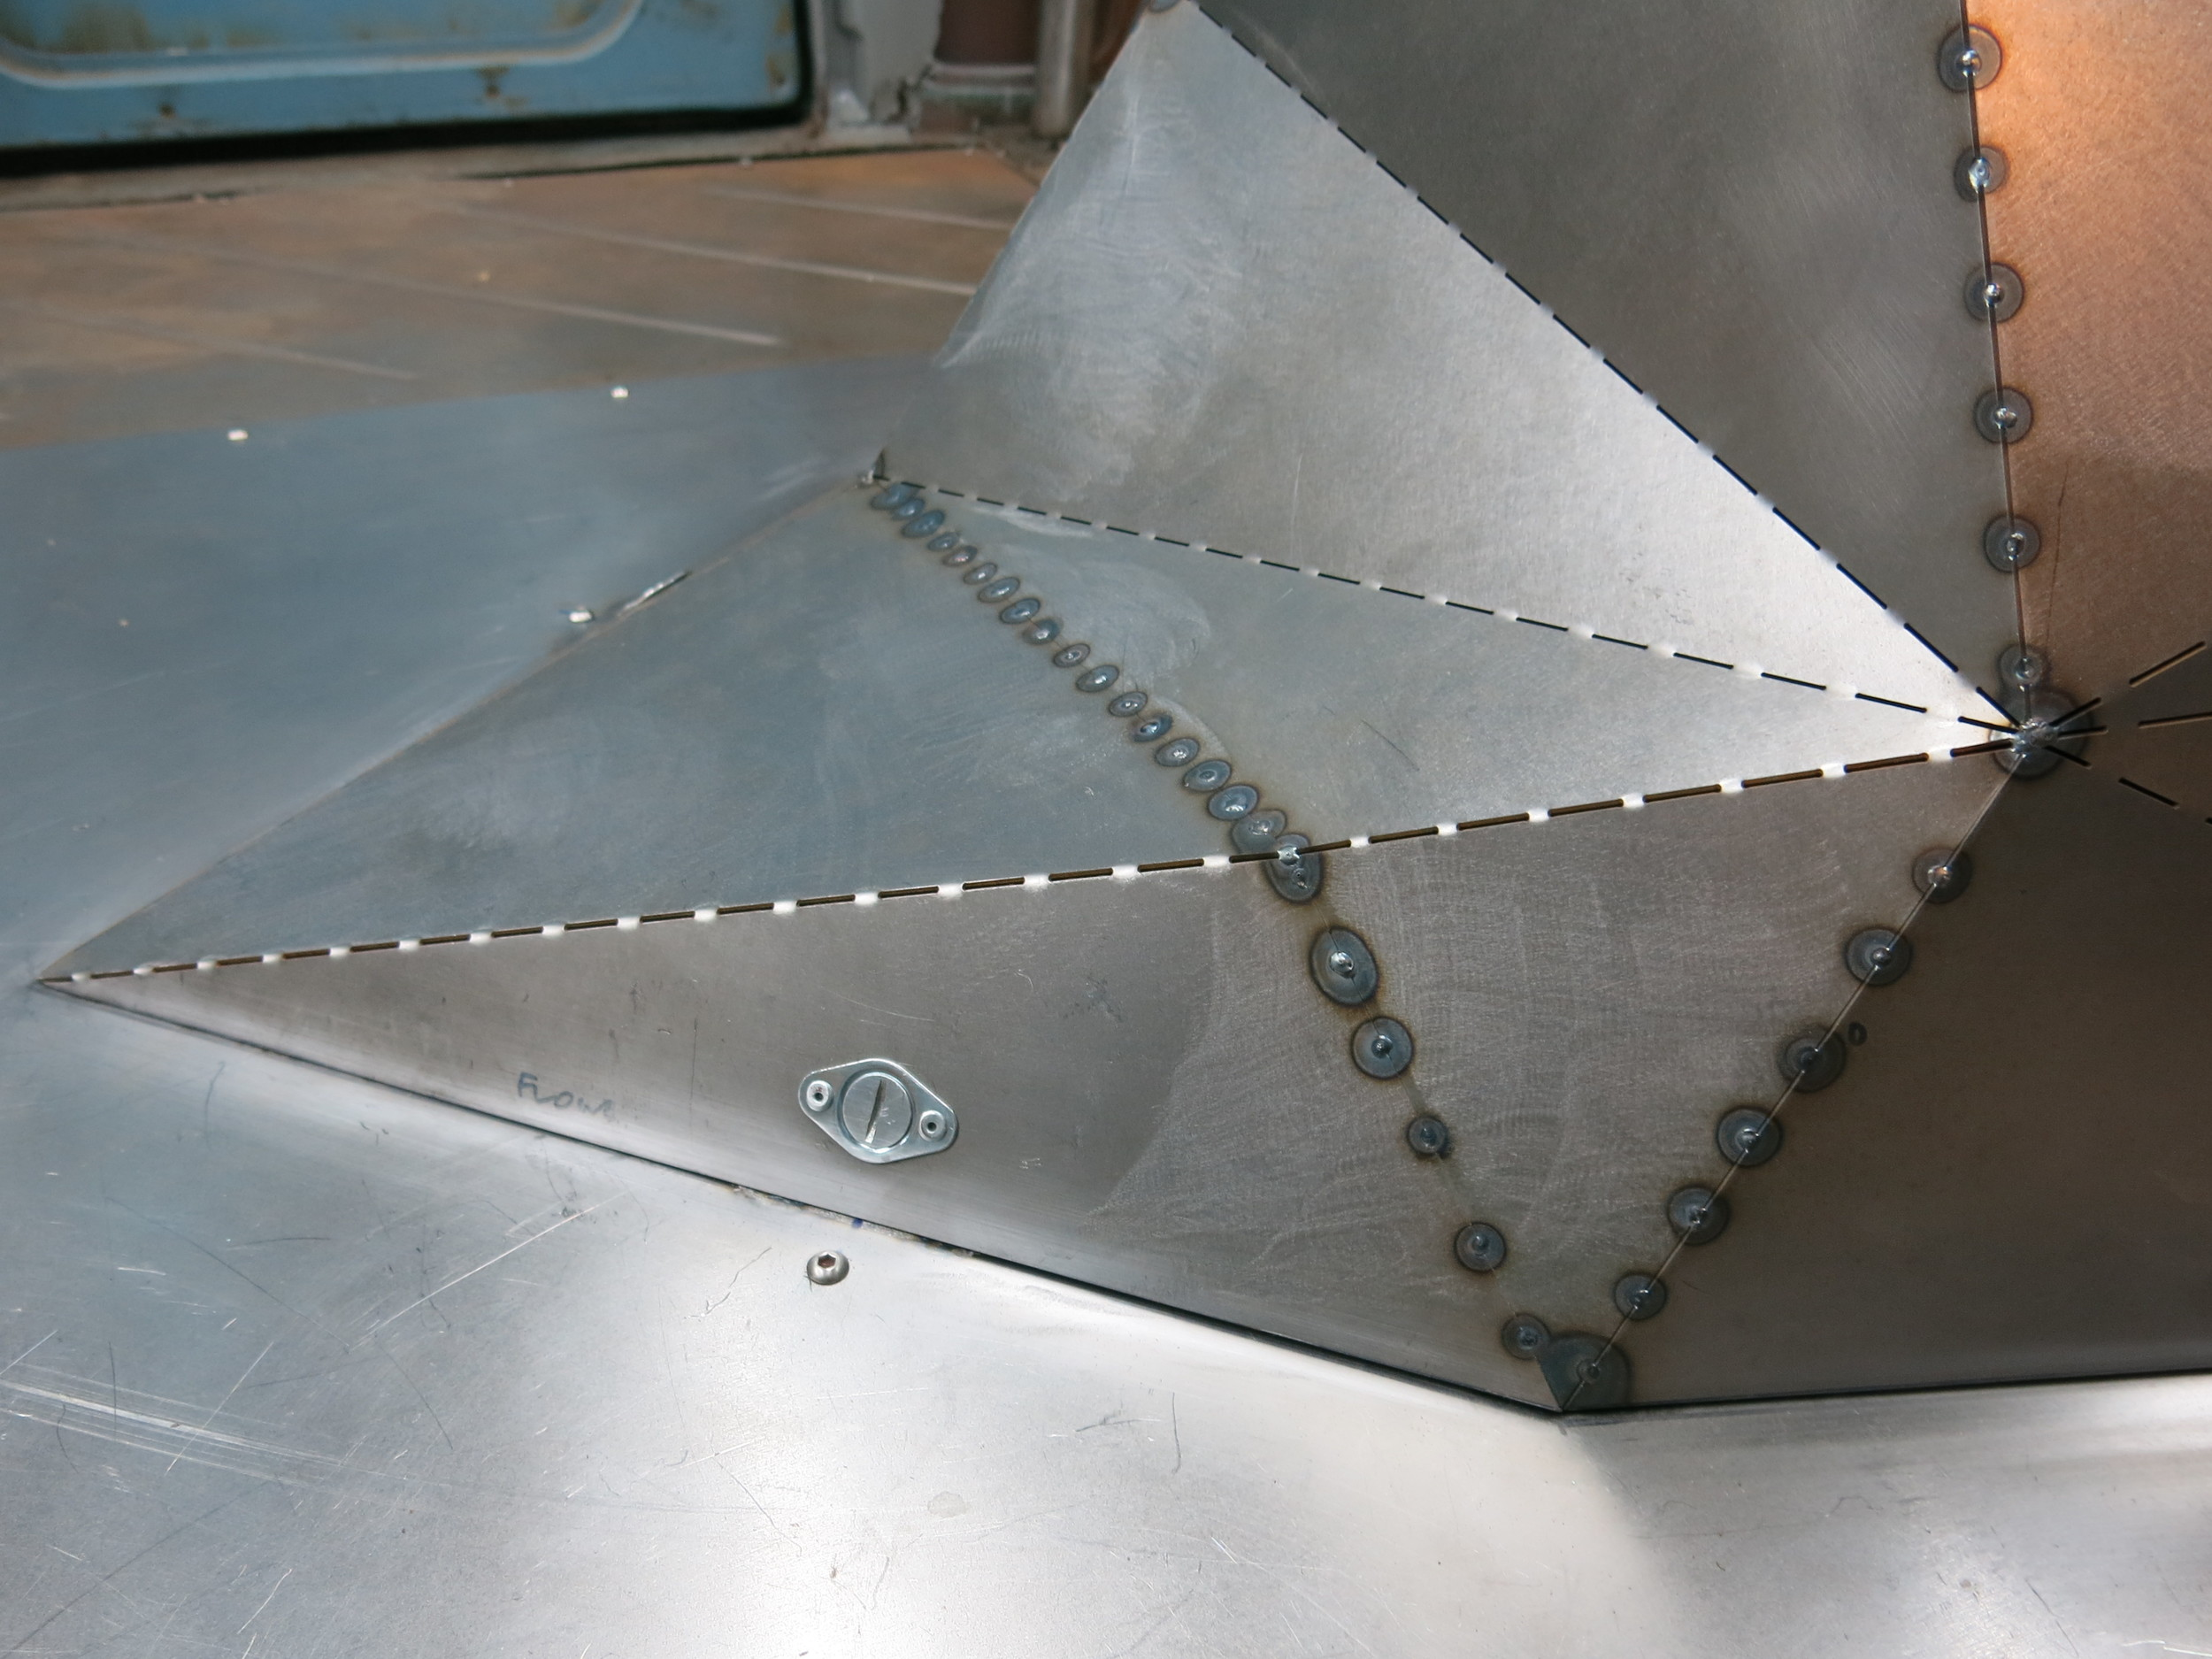 Facet Form motor enclosure detail showing Dzus fittings, a trusted race car body panel fascinating system.